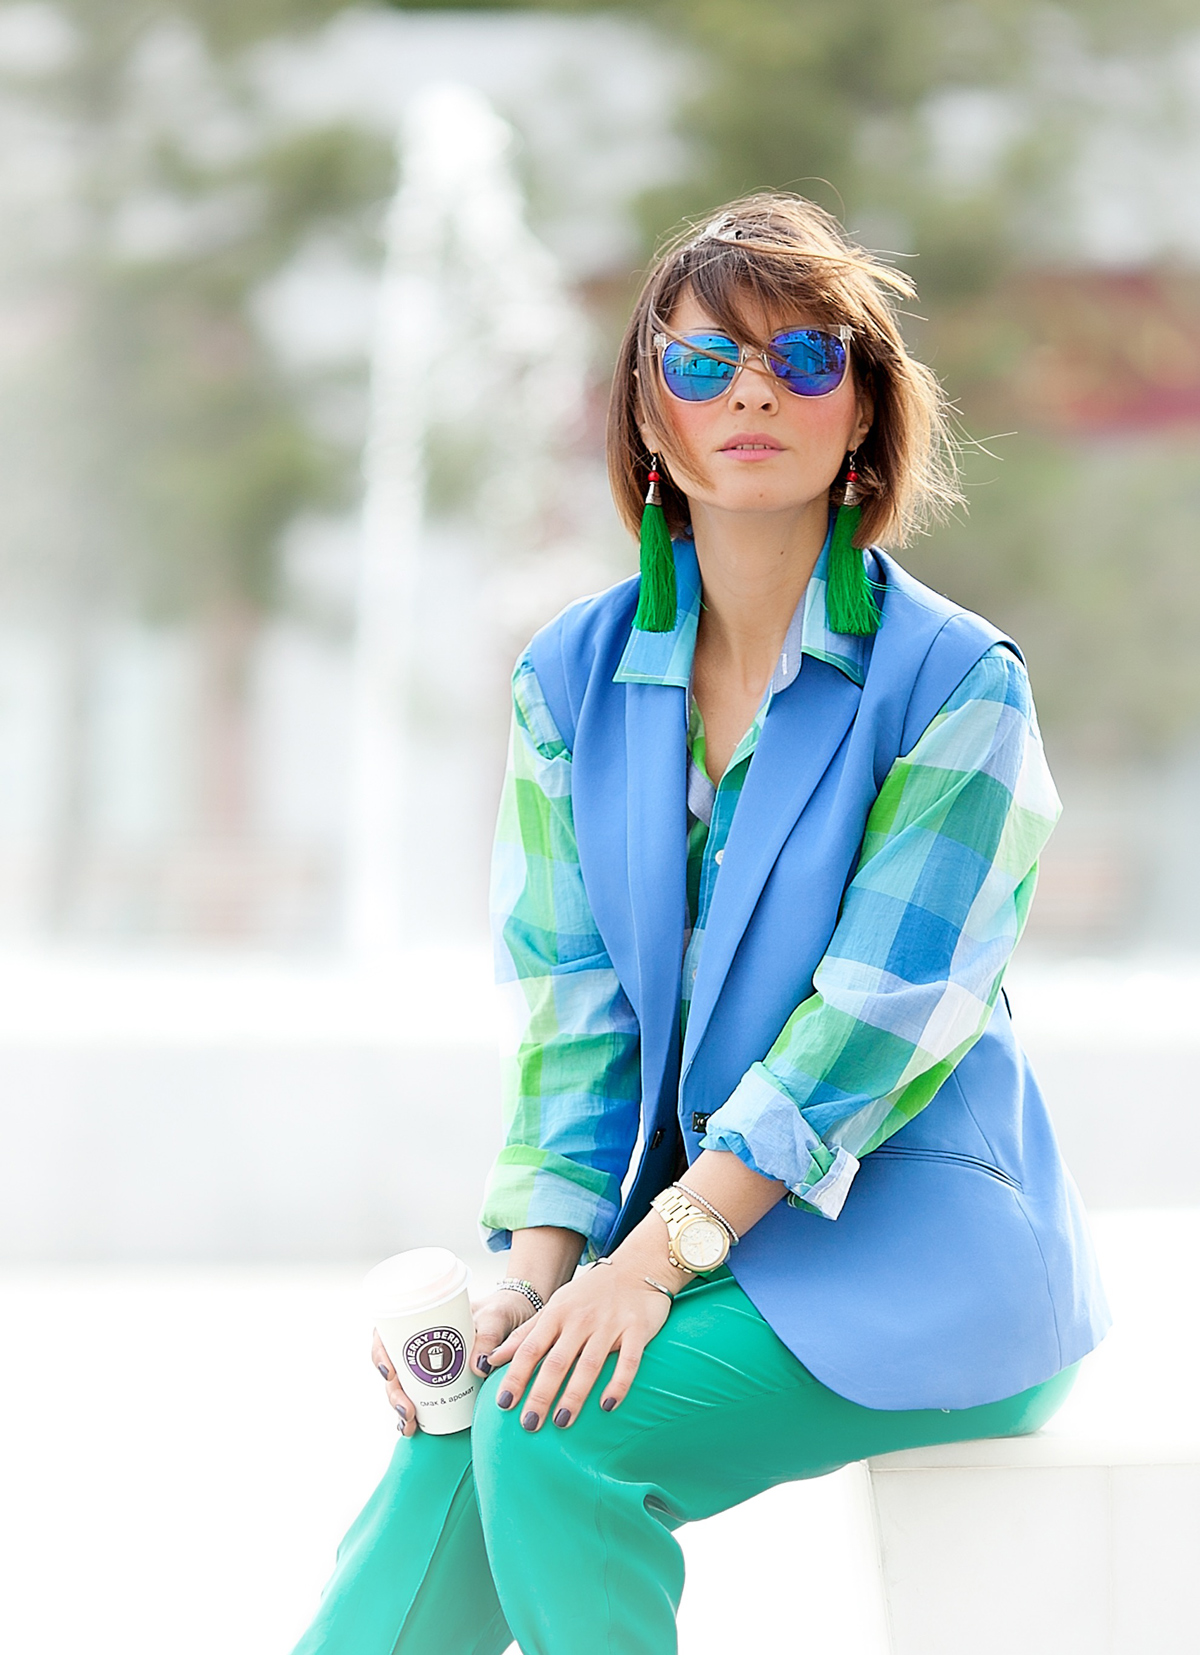 vest blazer and checked shirt outfit in colorblock style on GalantGirl.com